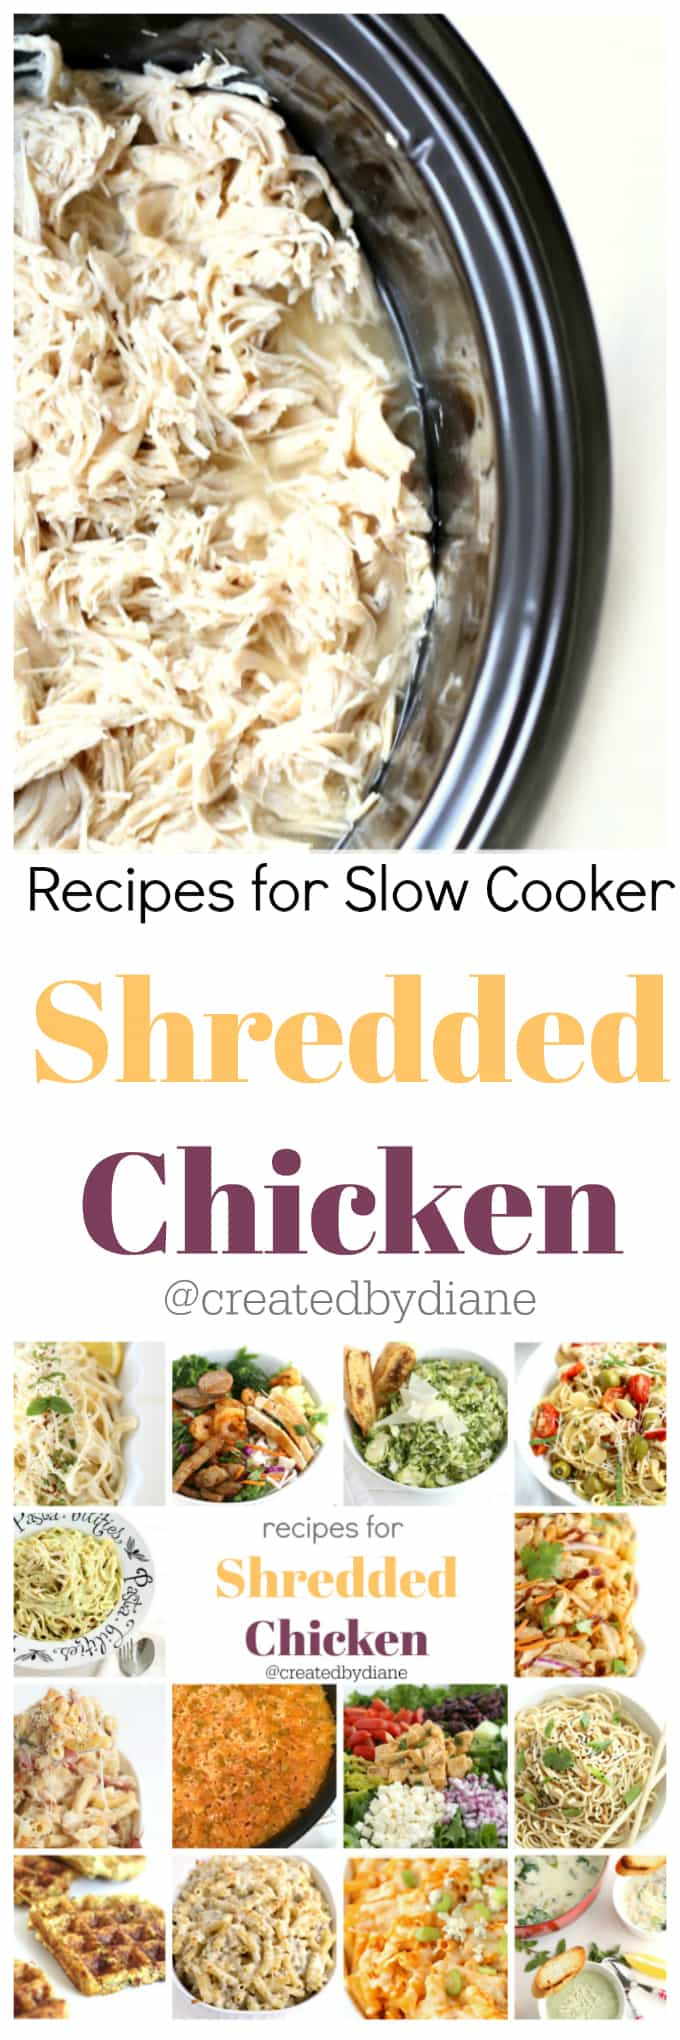 recipes for slow cooker shredded chicken @createdbydiane